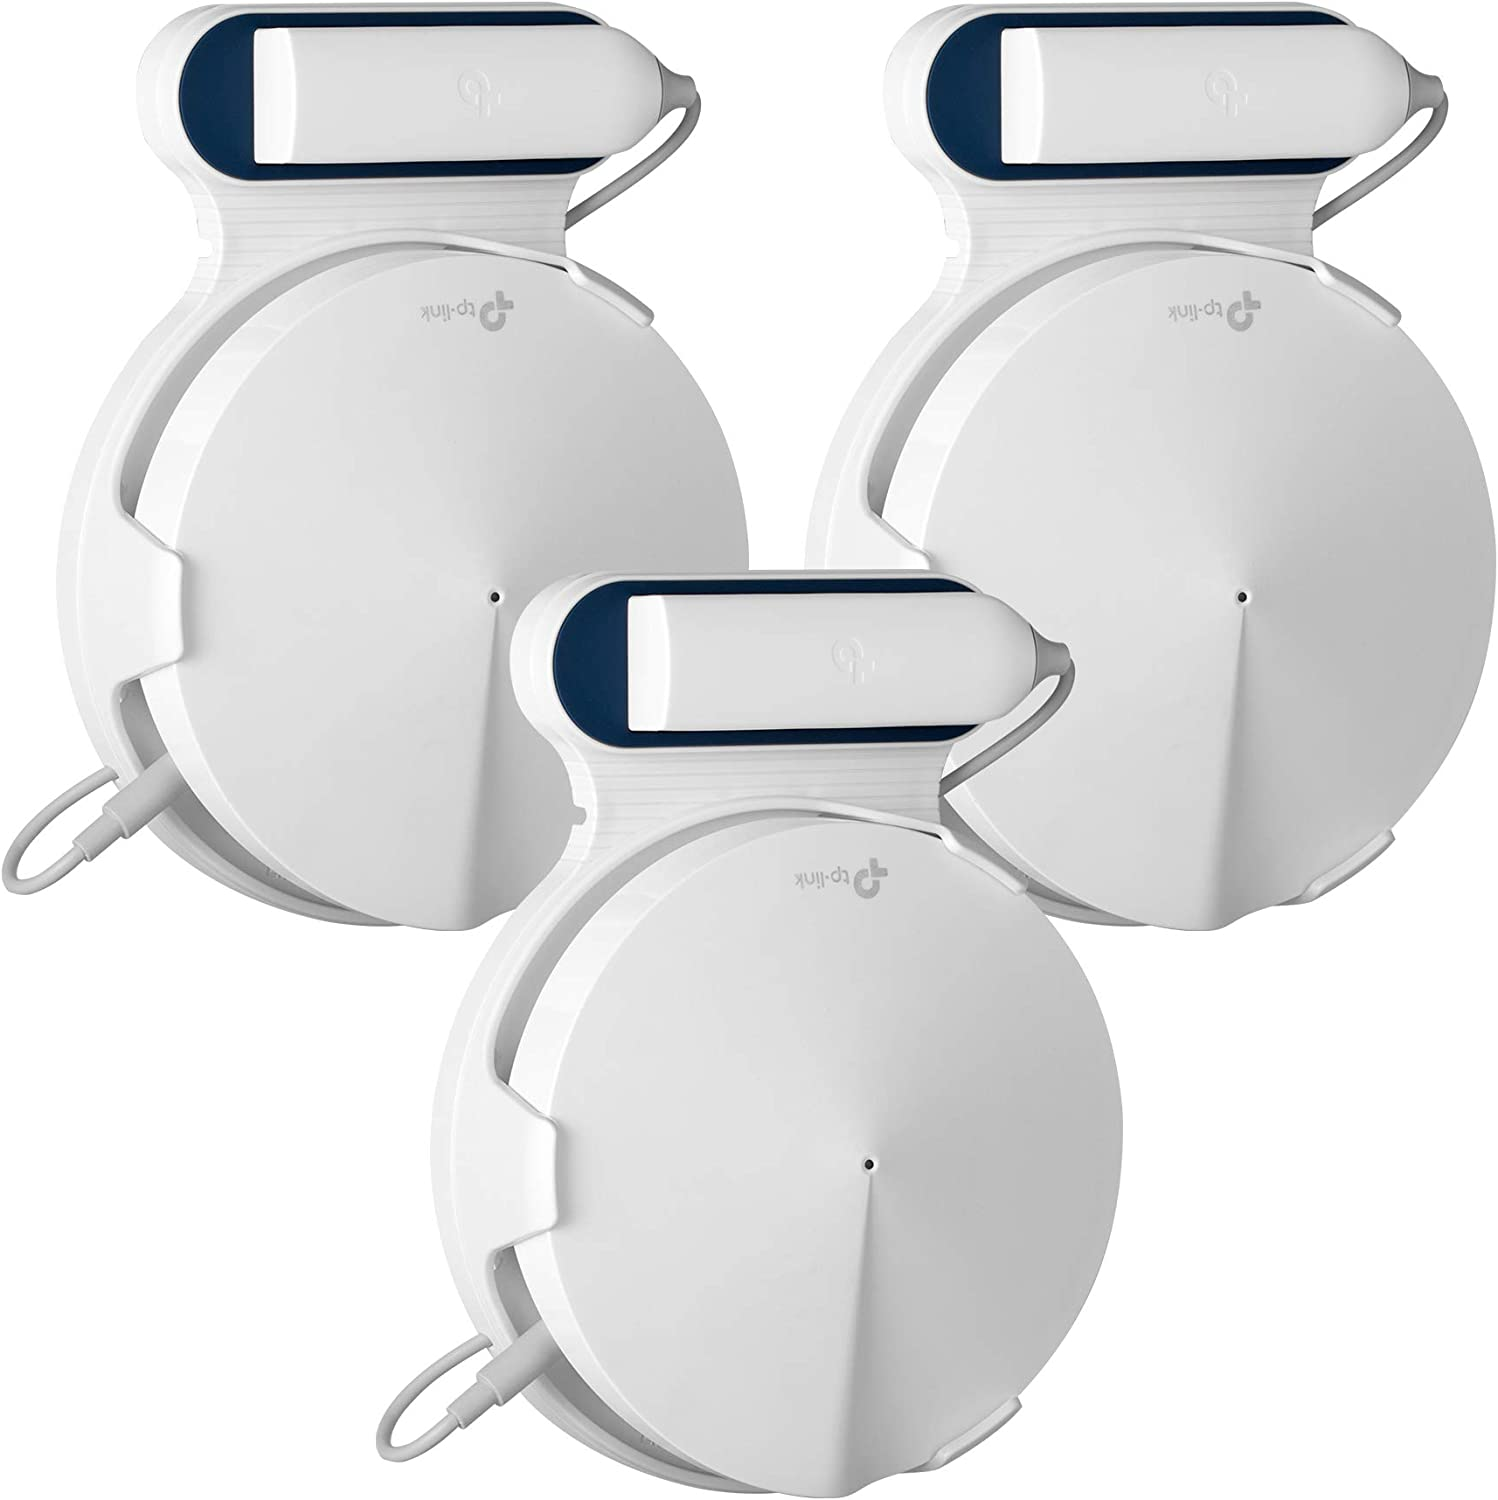 STANSTAR Wall Mount for Max 81% OFF TP-Link At the price Deco WiFi M9 Plus Syst Home Mesh